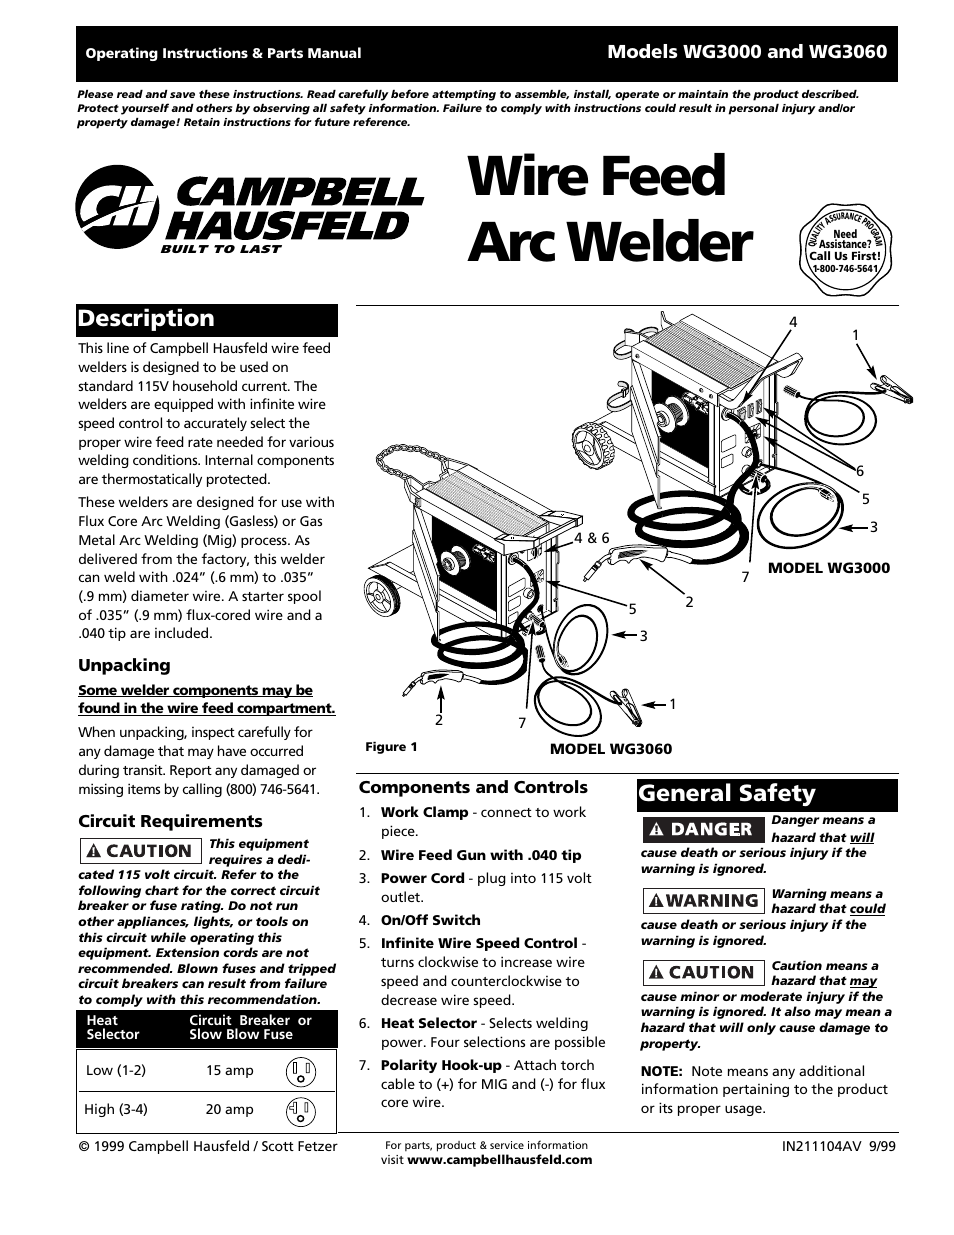 Campbell Hausfeld Wg3060 User Manual 48 Pages Also For Wg3000 20 Amp 120 Volt Plug Wiring Diagram